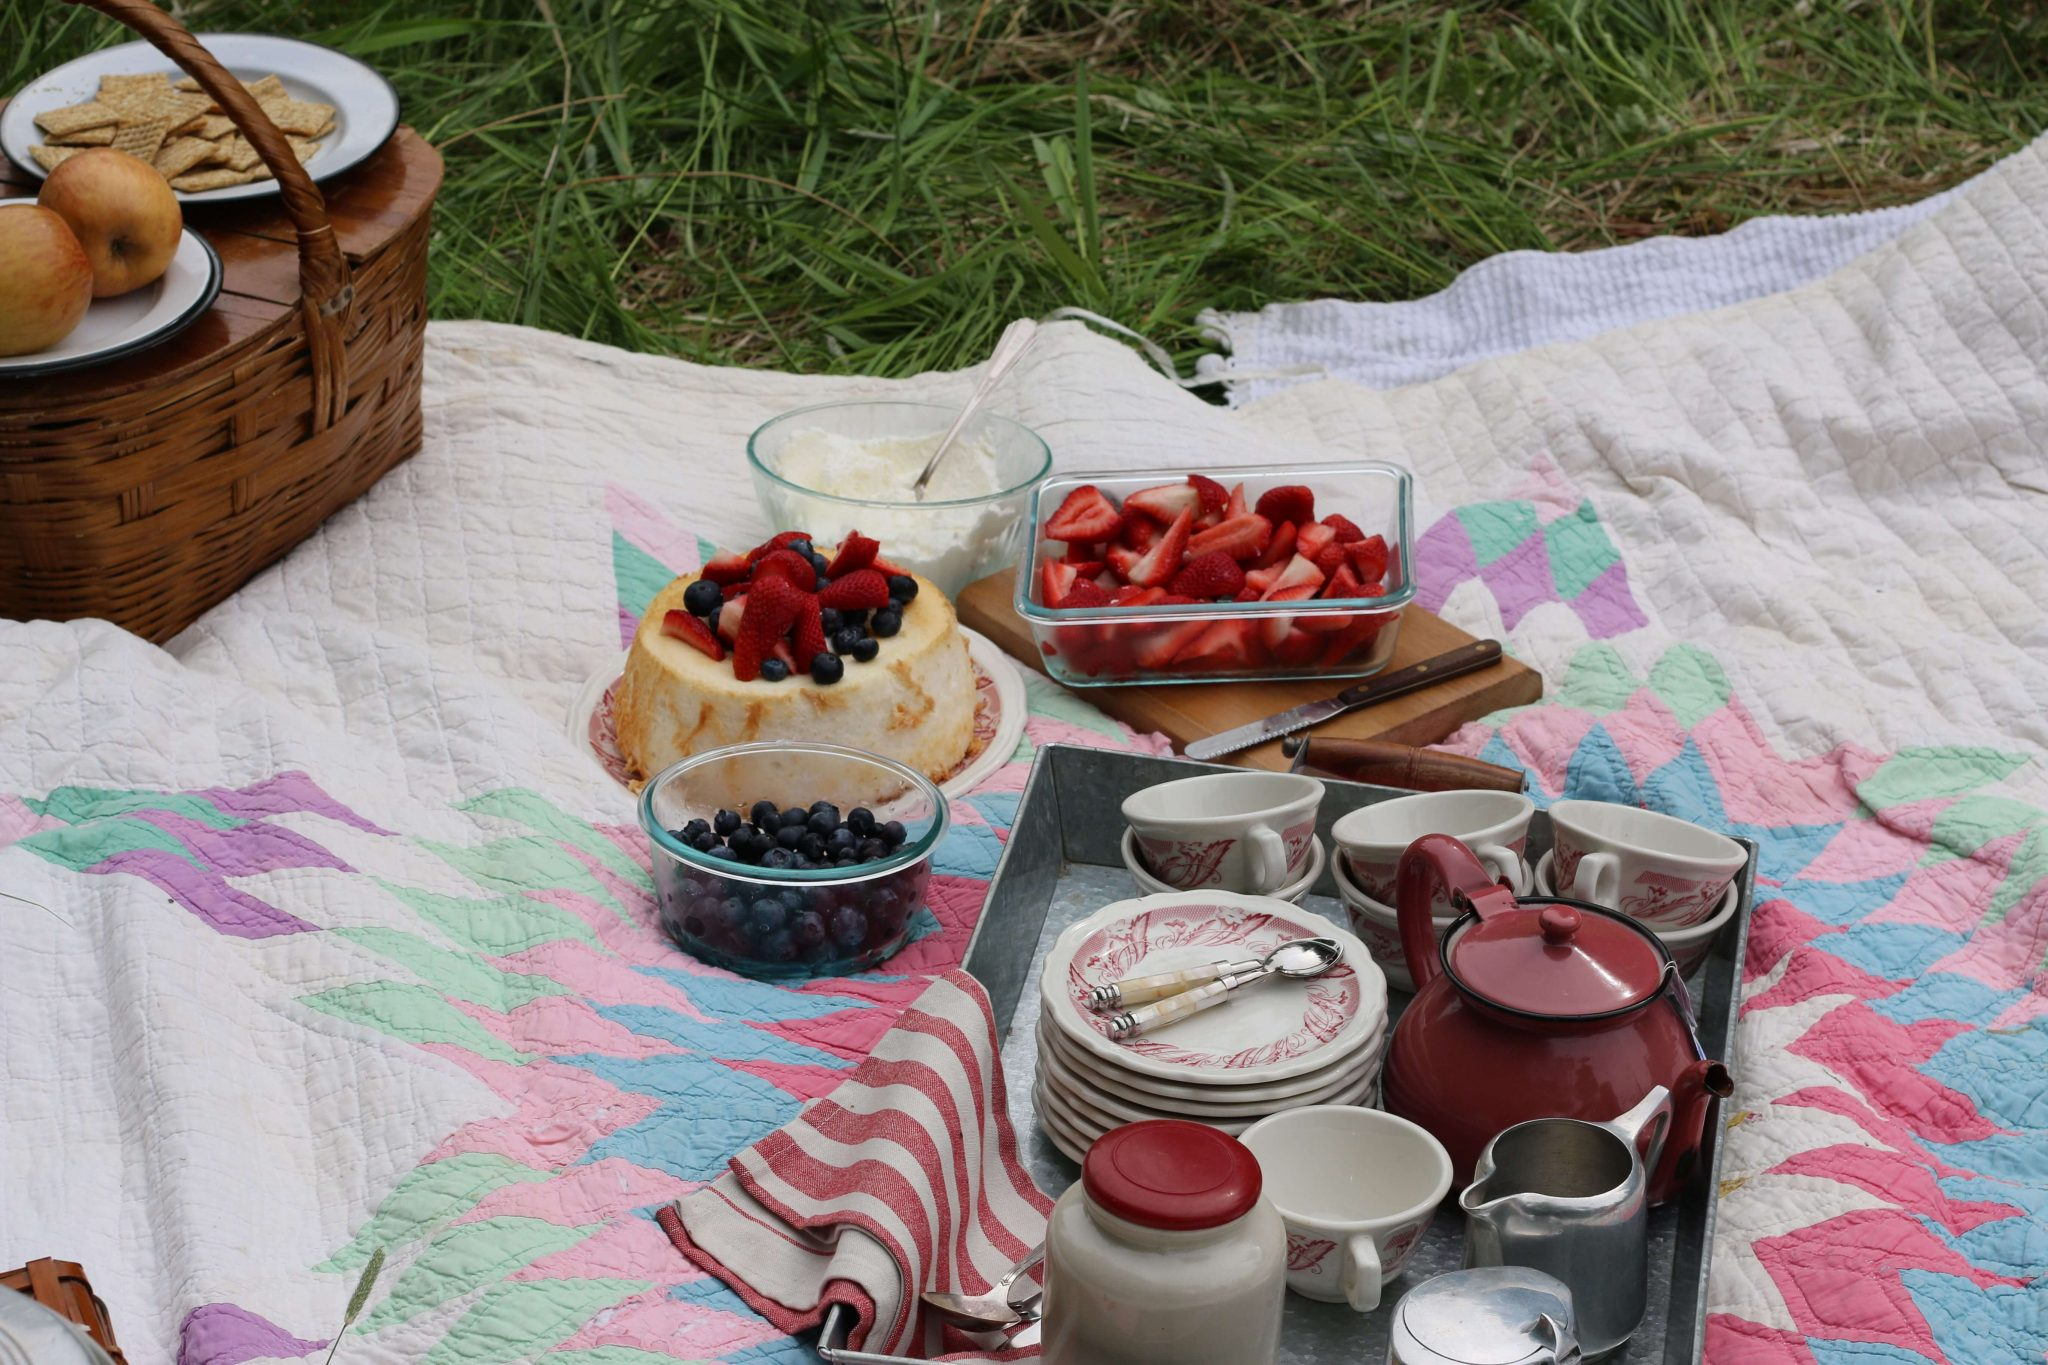 Even an all day Picnic has tea time! LOVE that old quilt too.